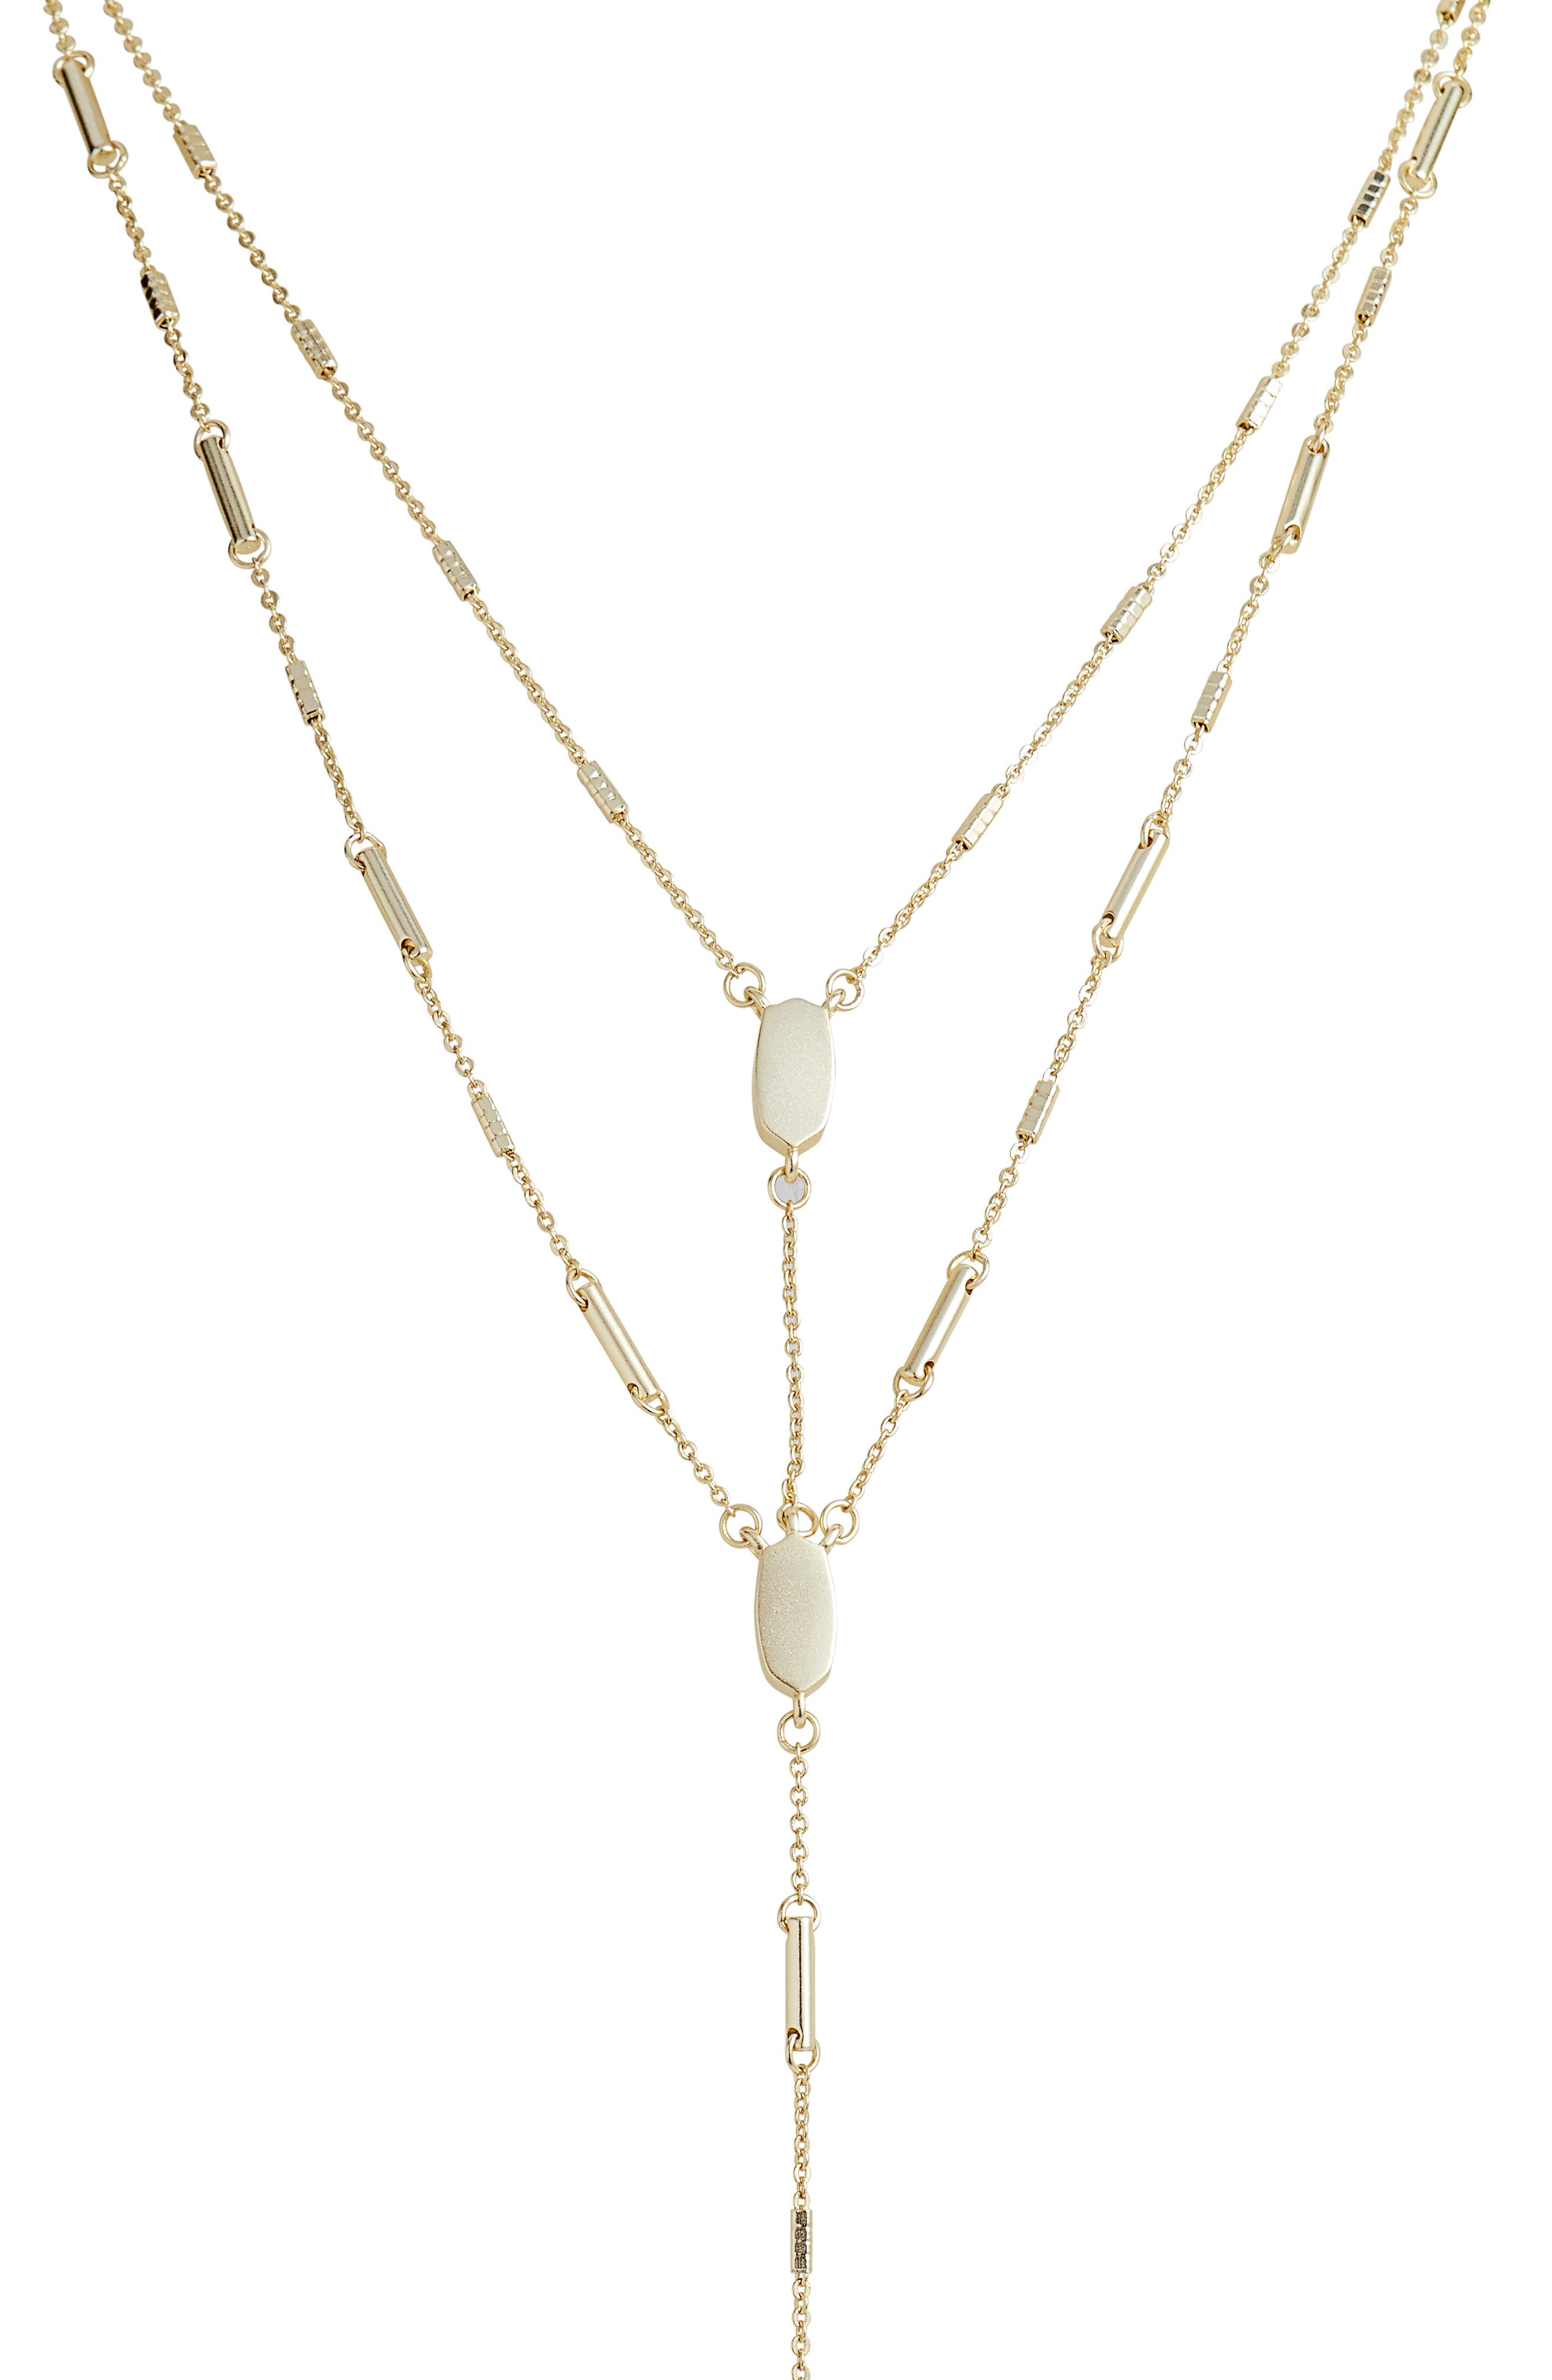 Adelia Multistrand Y-Necklace,                             Alternate thumbnail 2, color,                             GOLD